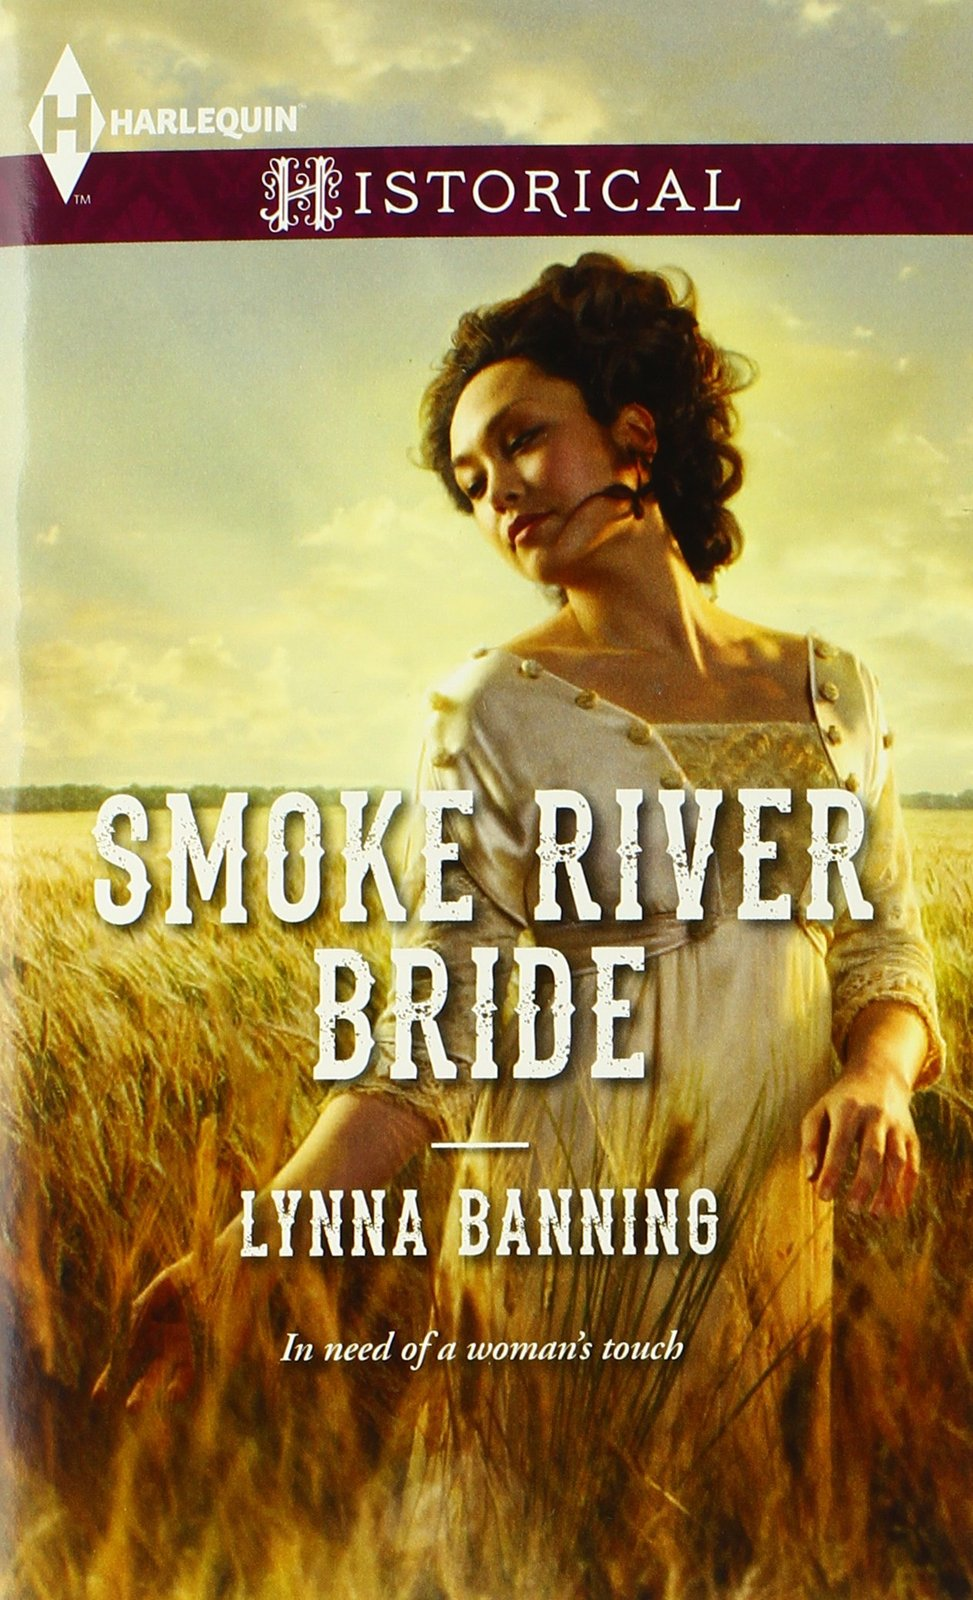 Smoke River Bride [Jul 23, 2013] Banning, Lynna